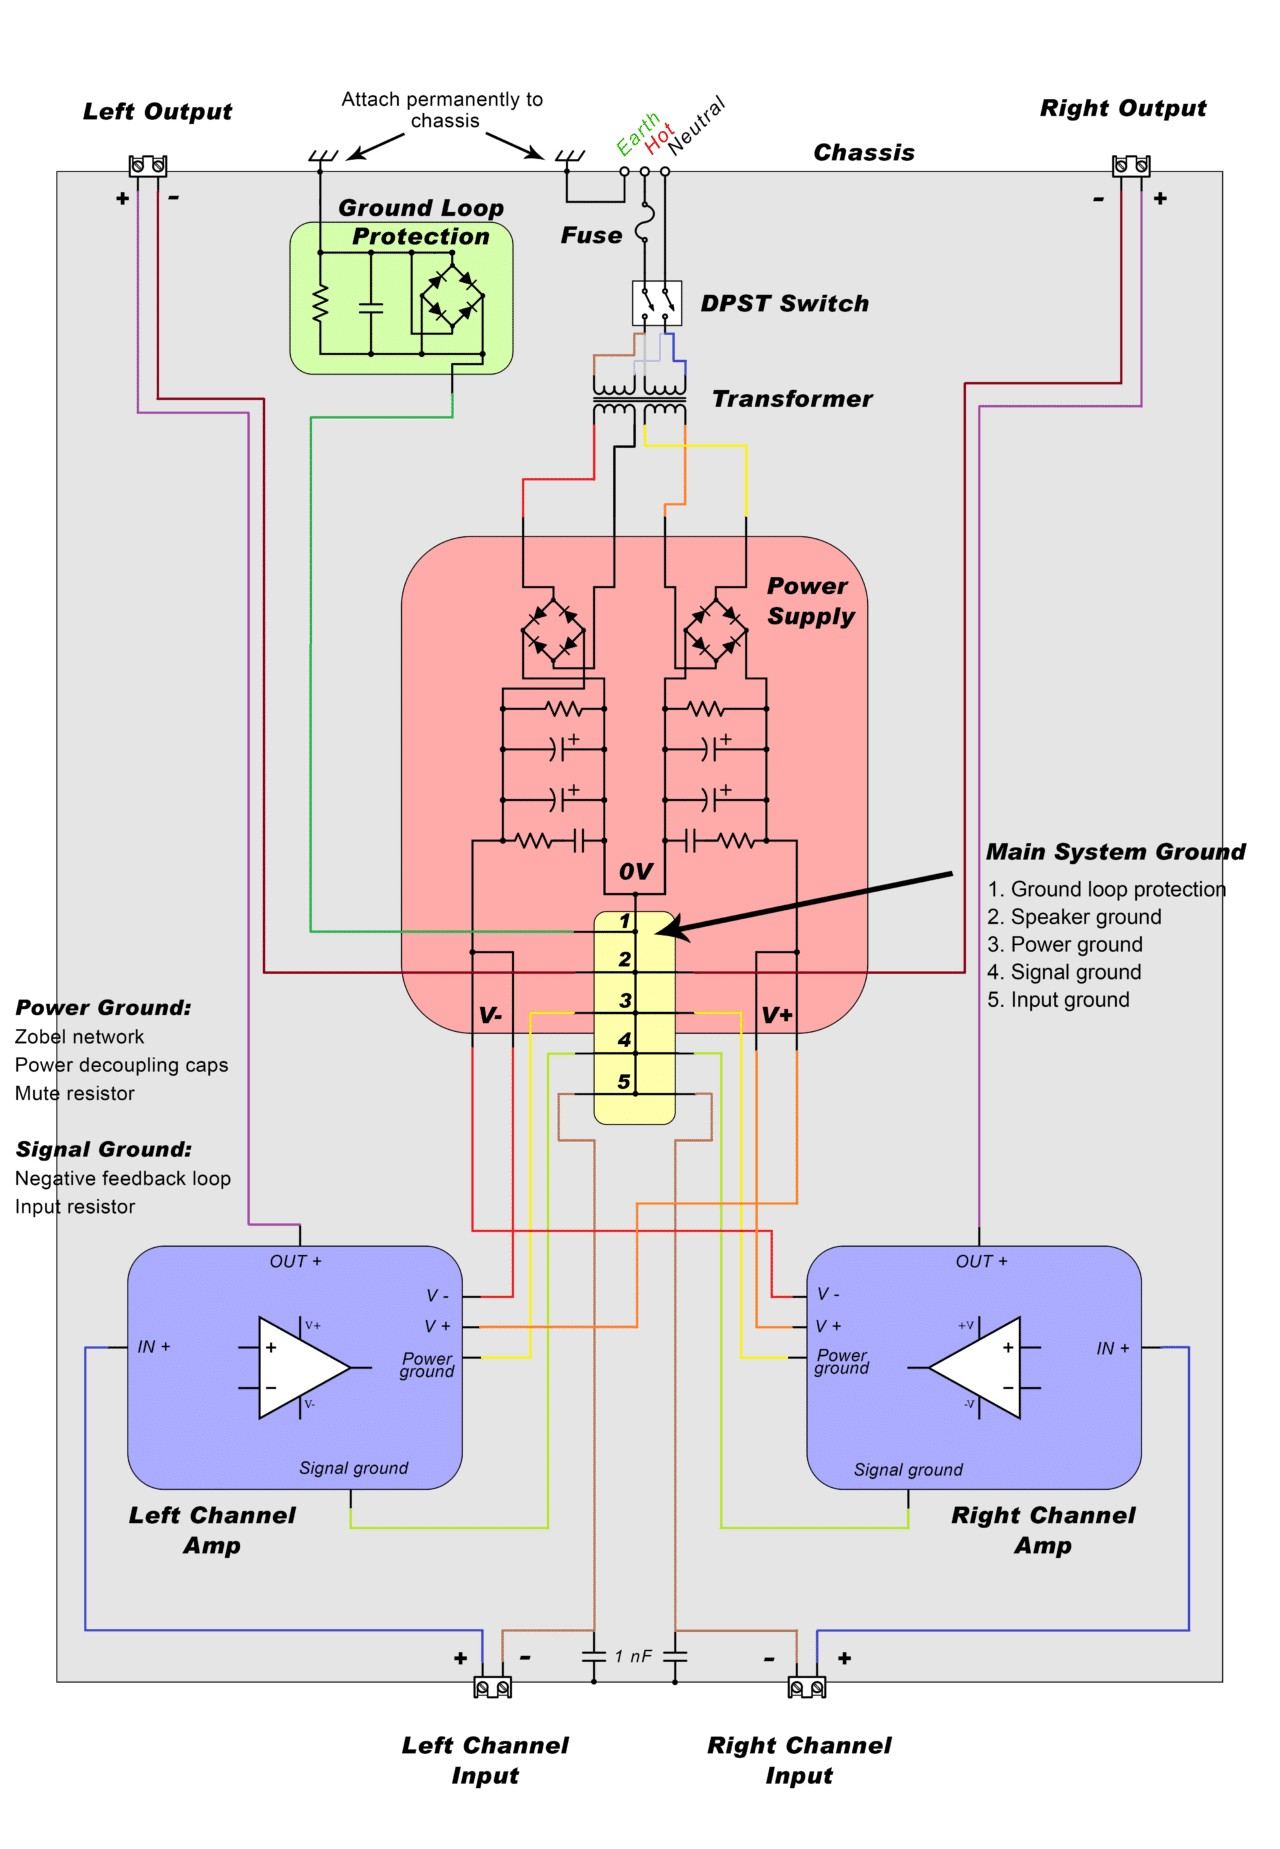 Tda 2040 25w Audio Amp Schematic How to Design and Build An Amplifier with the Tda2050 Of Tda 2040 25w Audio Amp Schematic